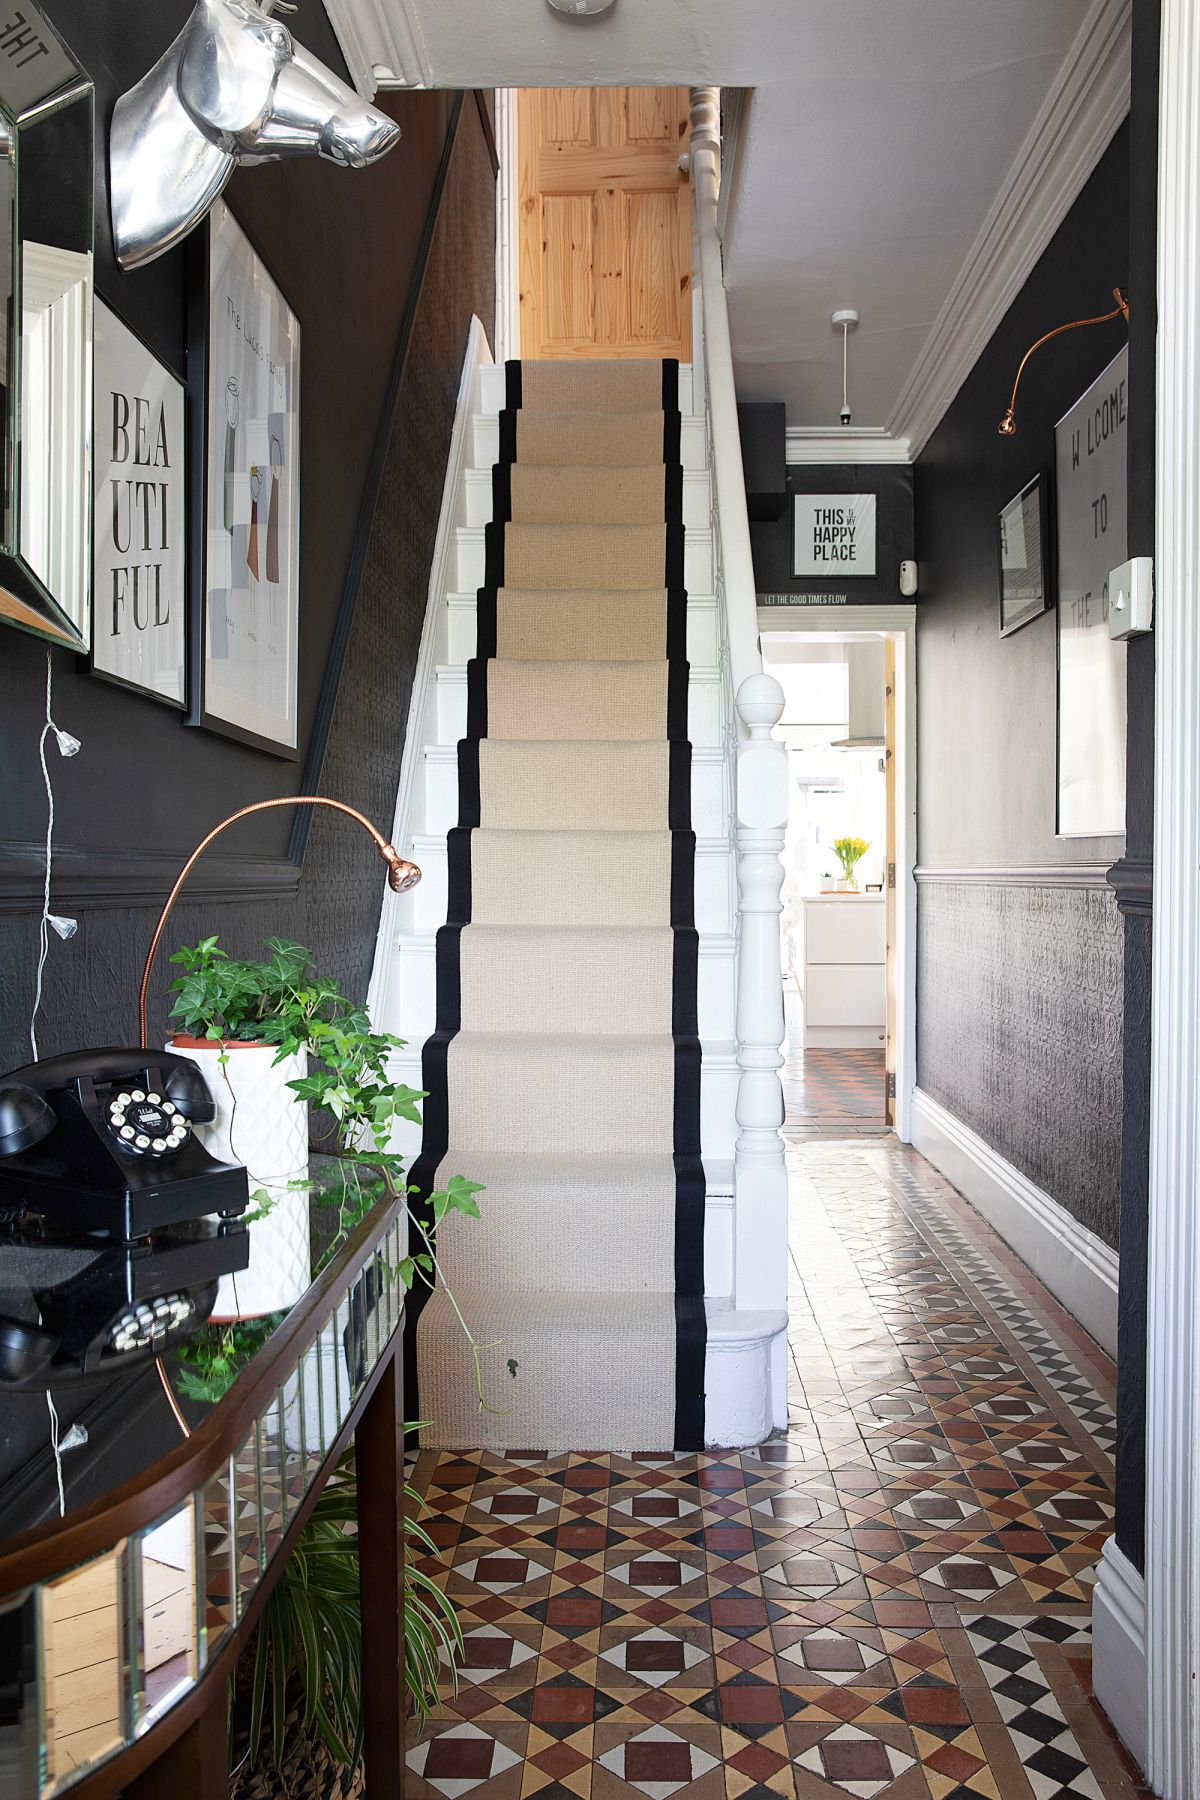 All the hallway design advice and inspiration you never knew you needed